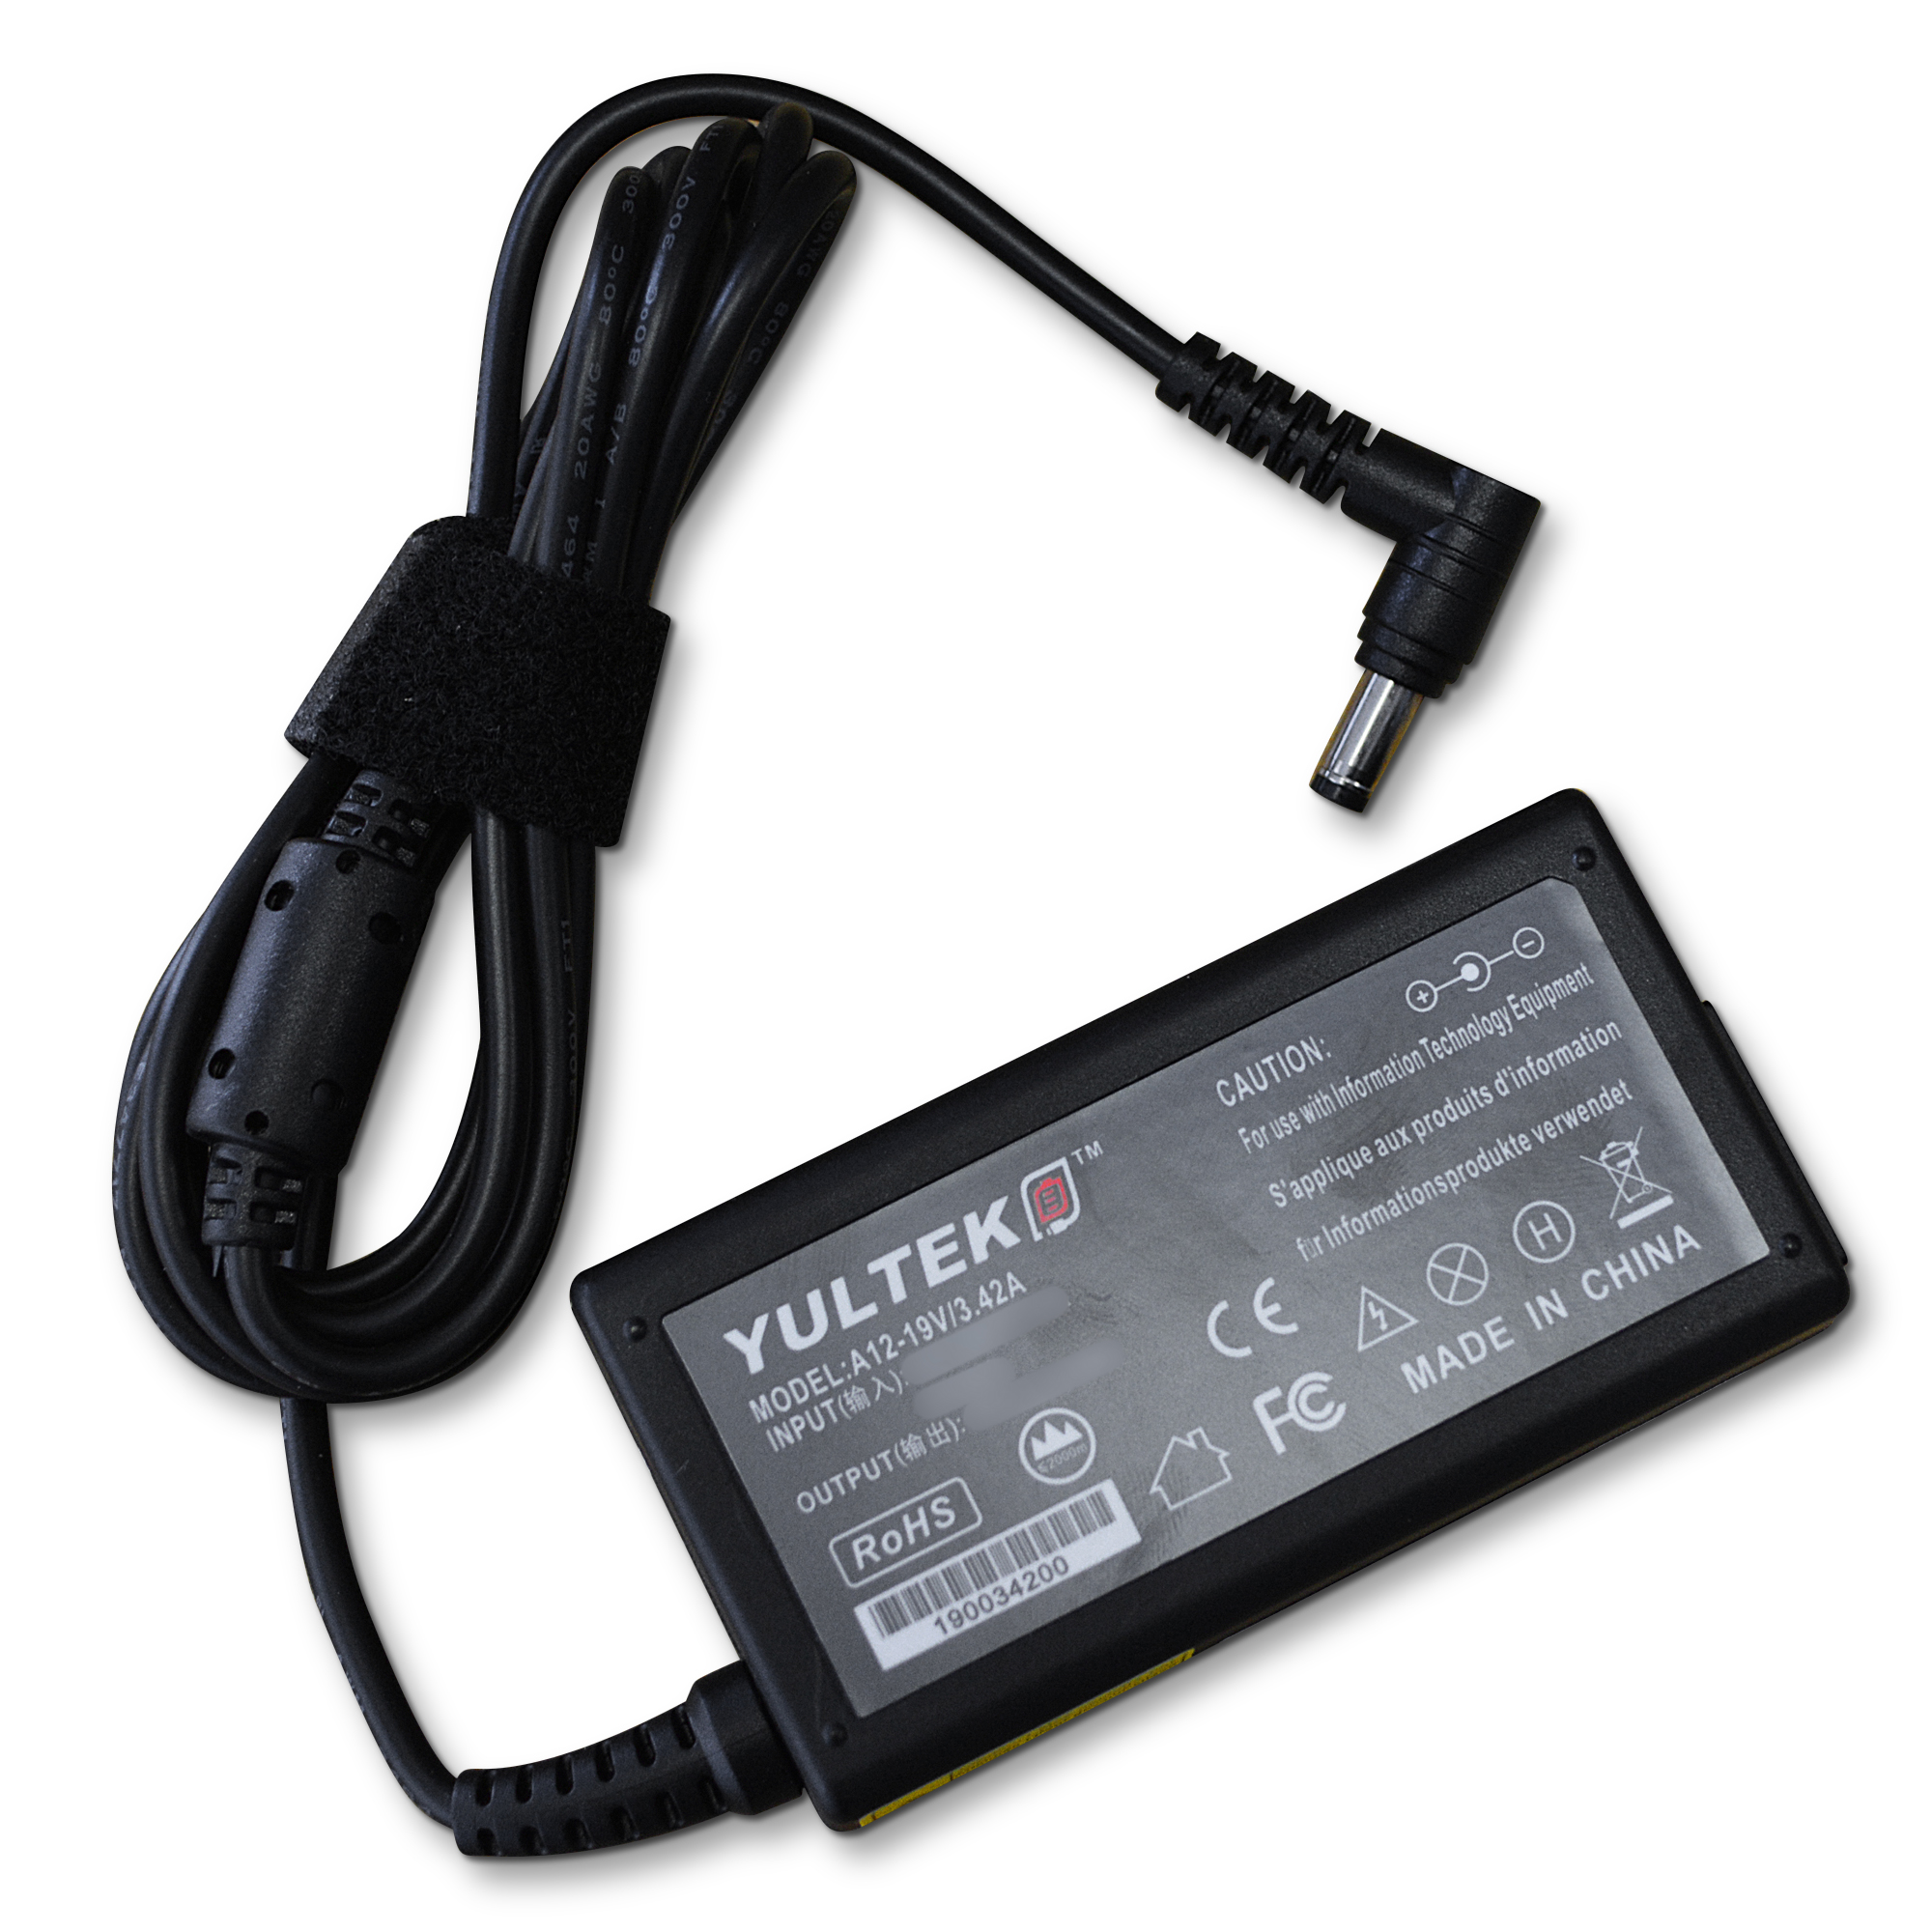 Fujitsu-Siemens Part Number S26113-E519-V55 Laptop Charger